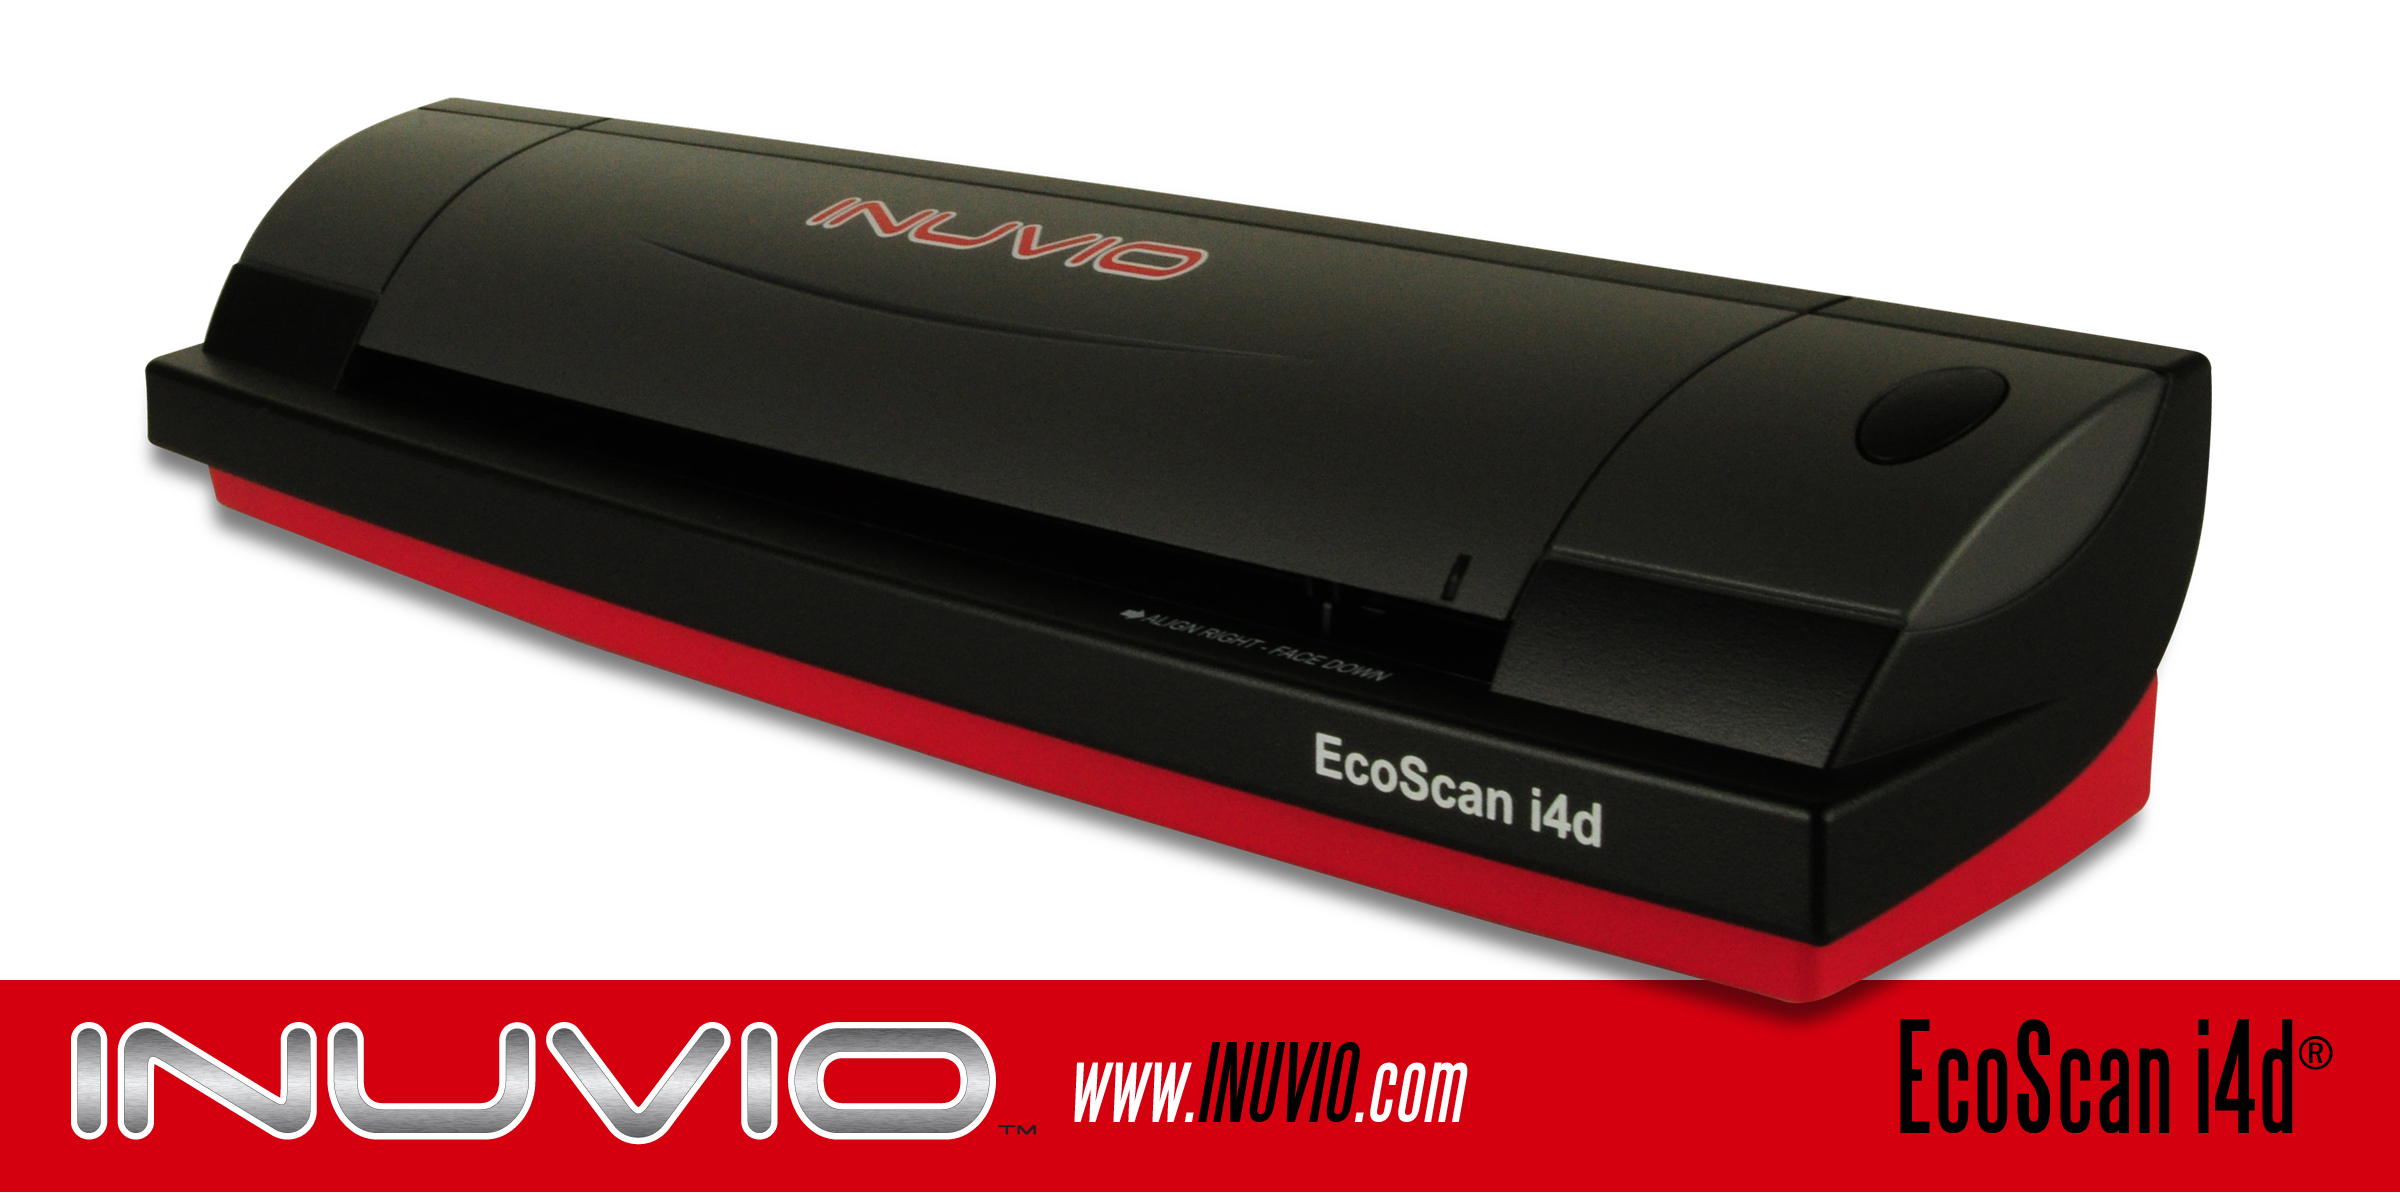 INUVIO ECOSCAN I4D DRIVERS FOR WINDOWS